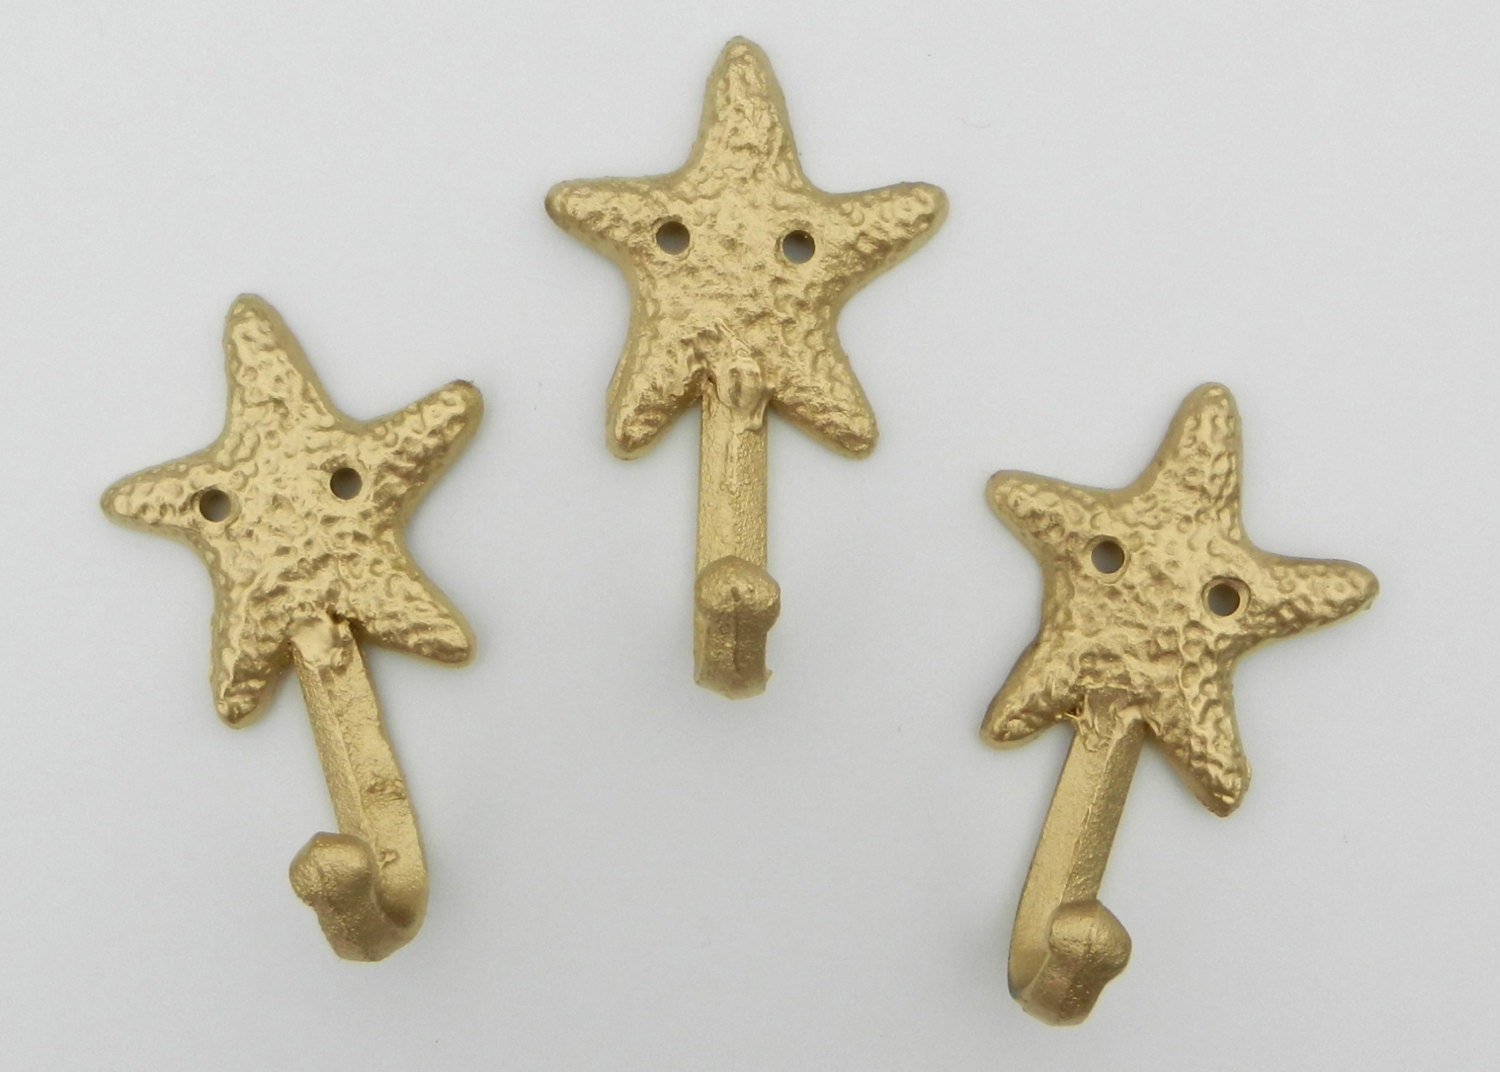 Gold Starfish Wall Decor : Moved permanently